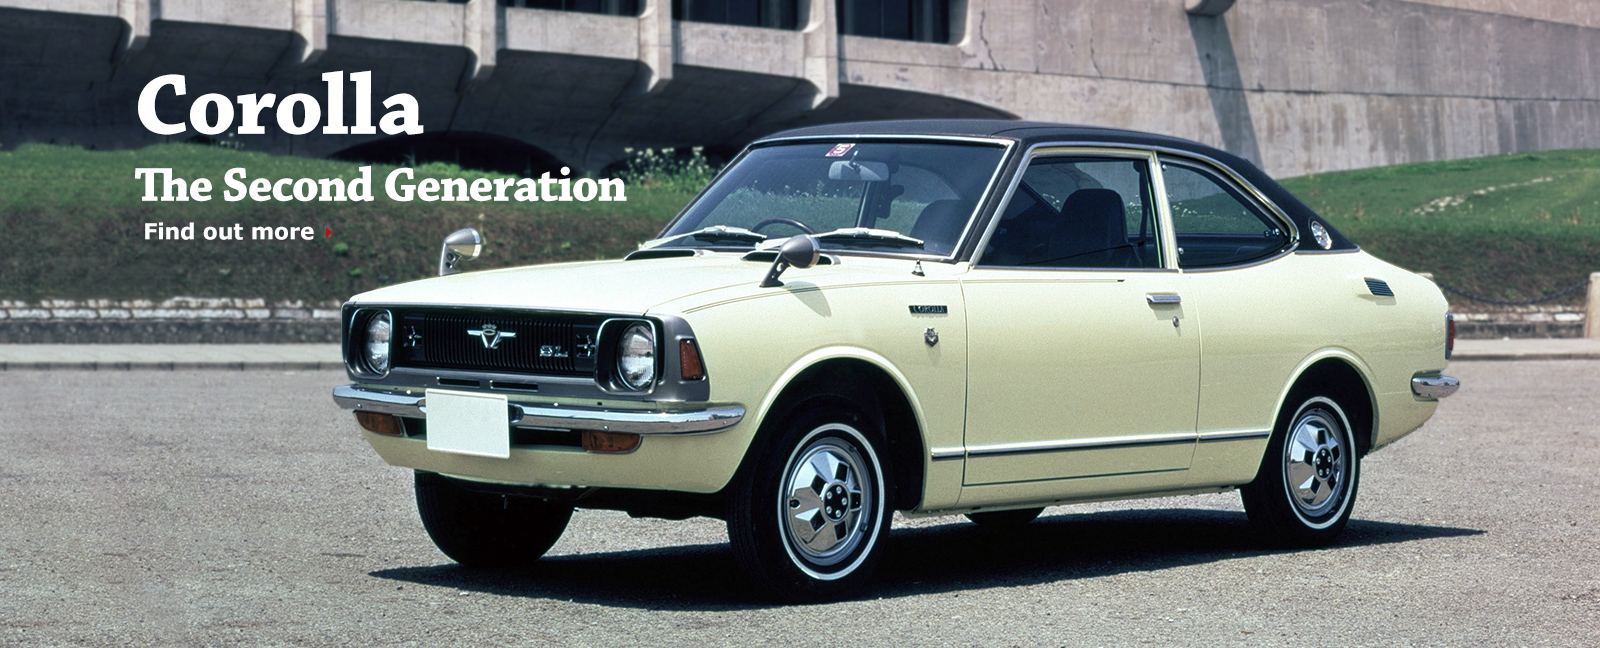 Corolla The Second Generation Find out more